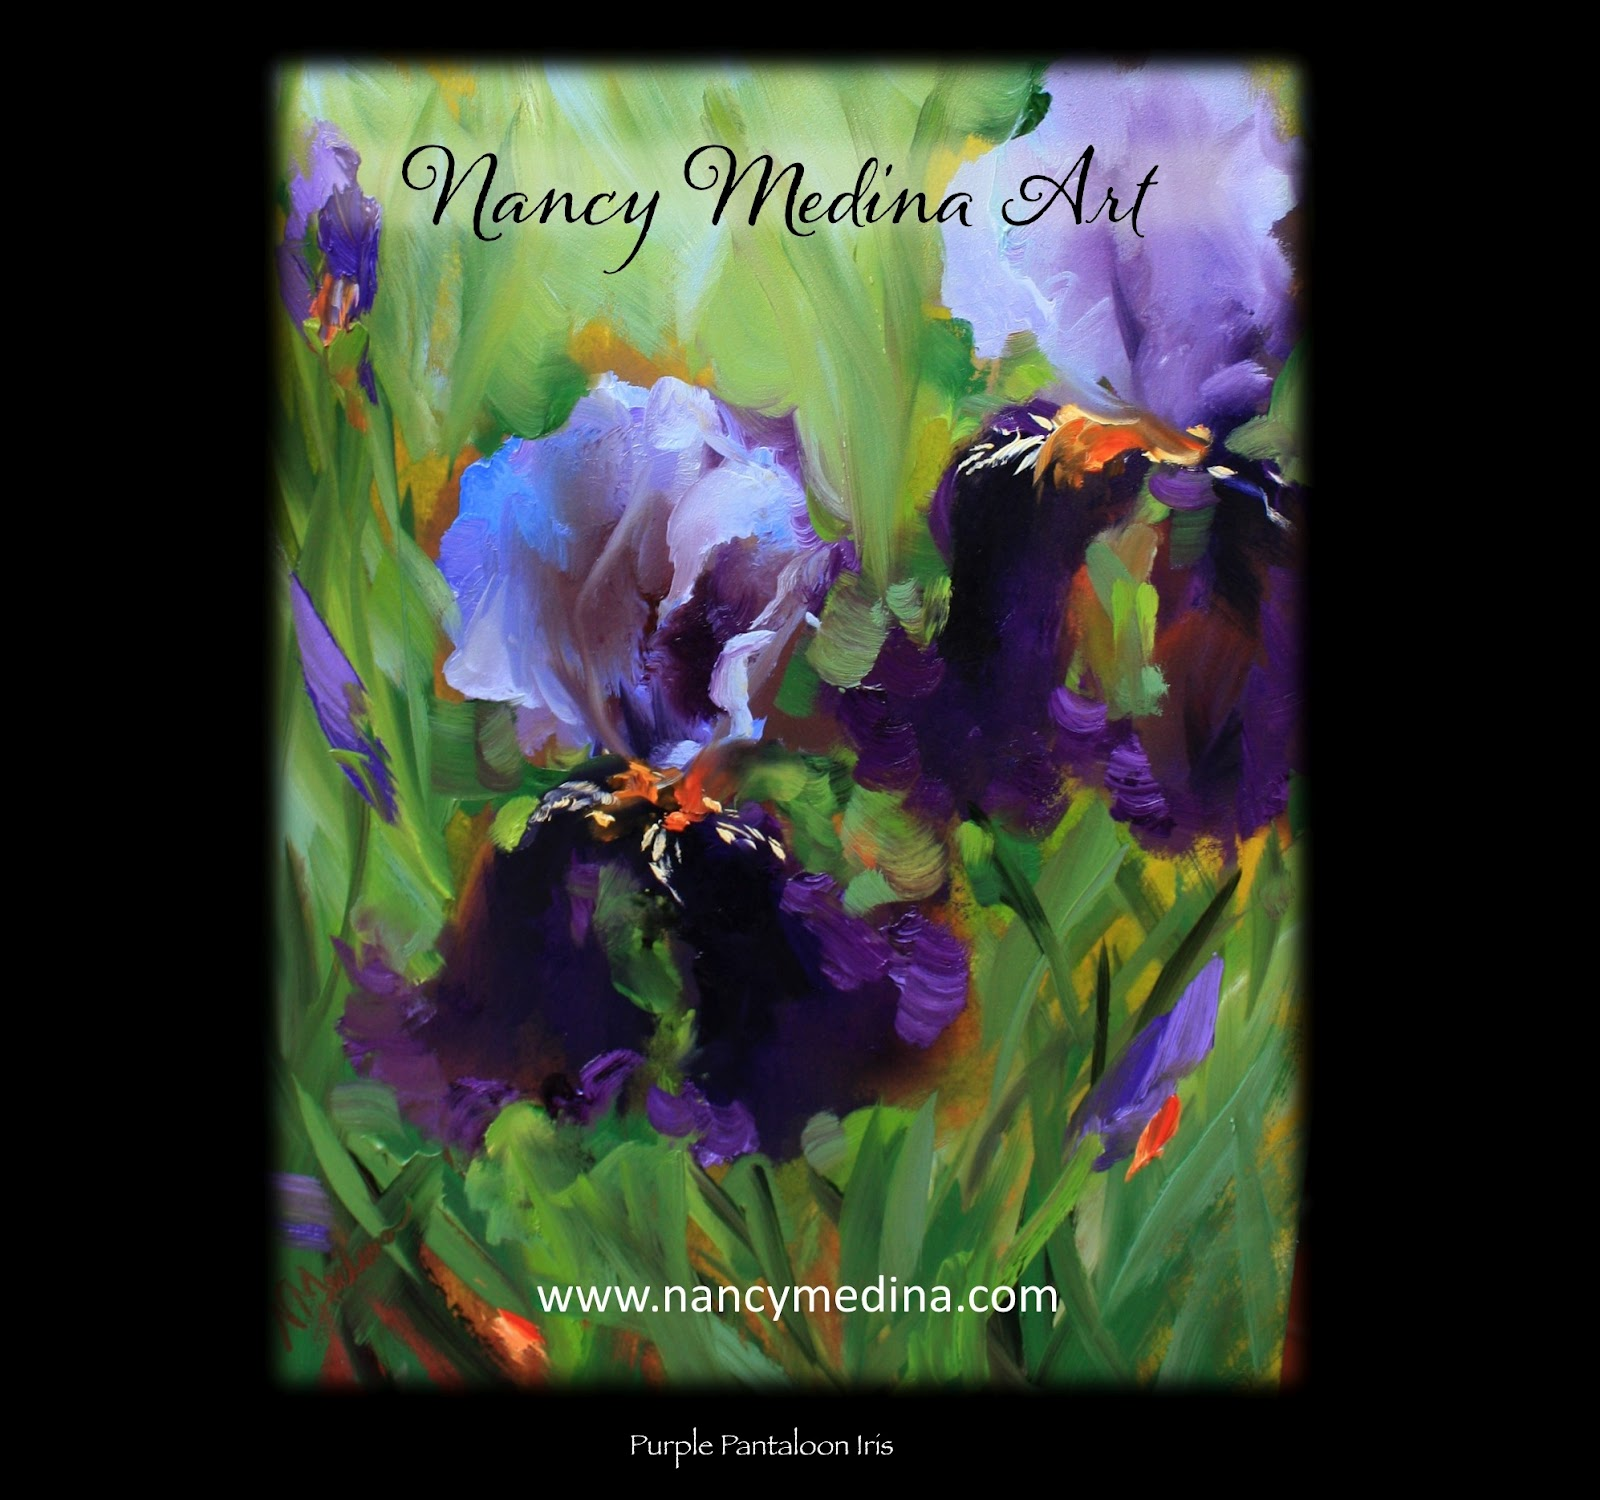 Nancy medina art my new iris painting video purple pantaloons by my new iris painting video purple pantaloons by texas flower artist nancy medina izmirmasajfo